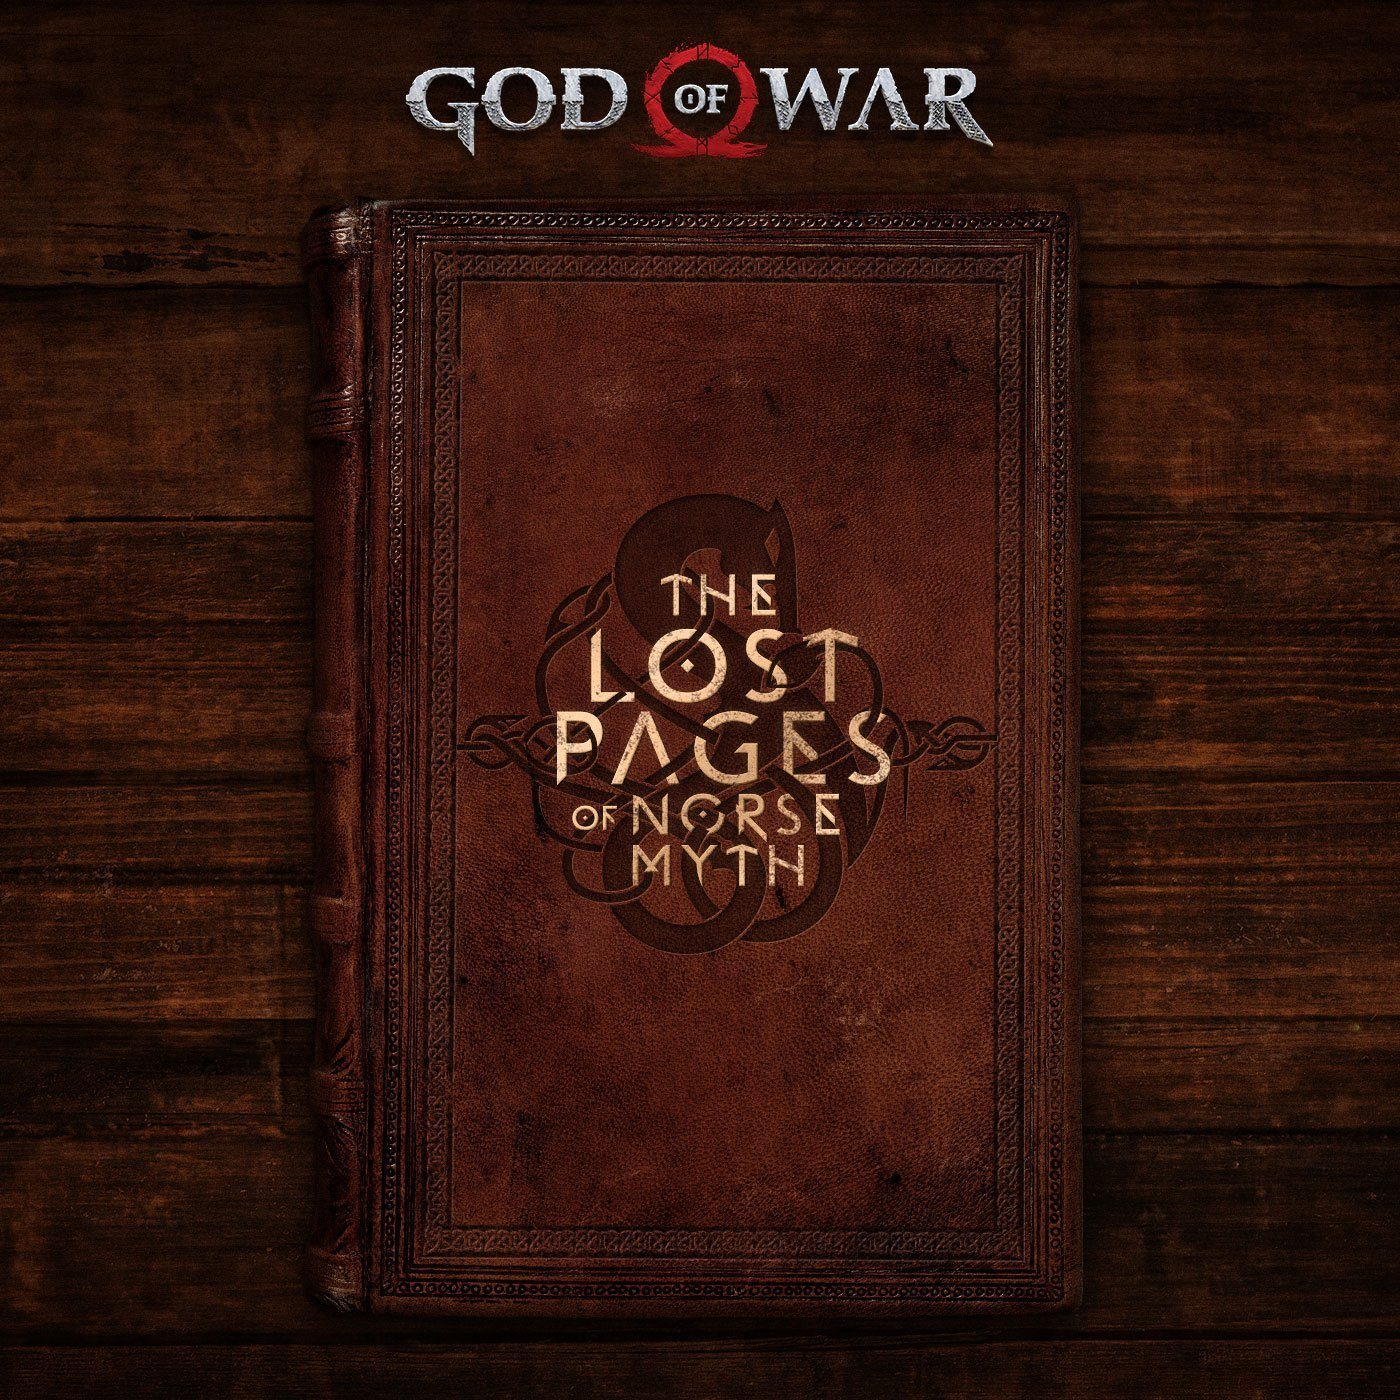 The Lost Pages Of Norse Myth By God Of War On Apple Podcasts